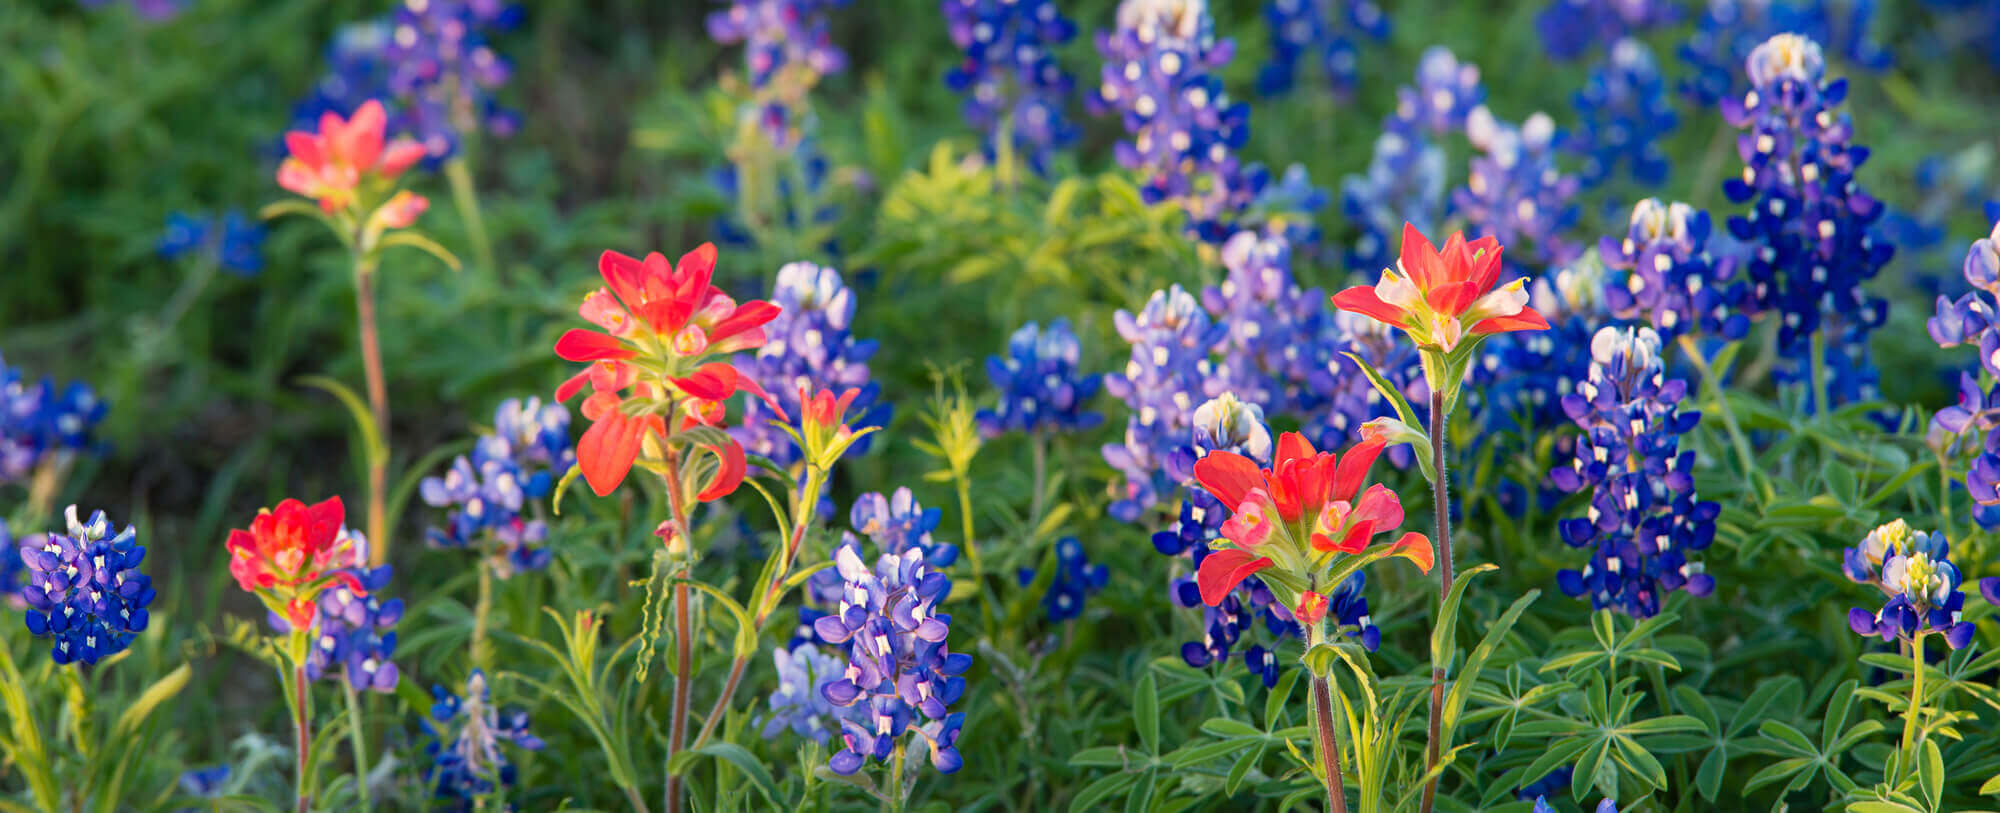 Blue bell flowers in the spring in Texas